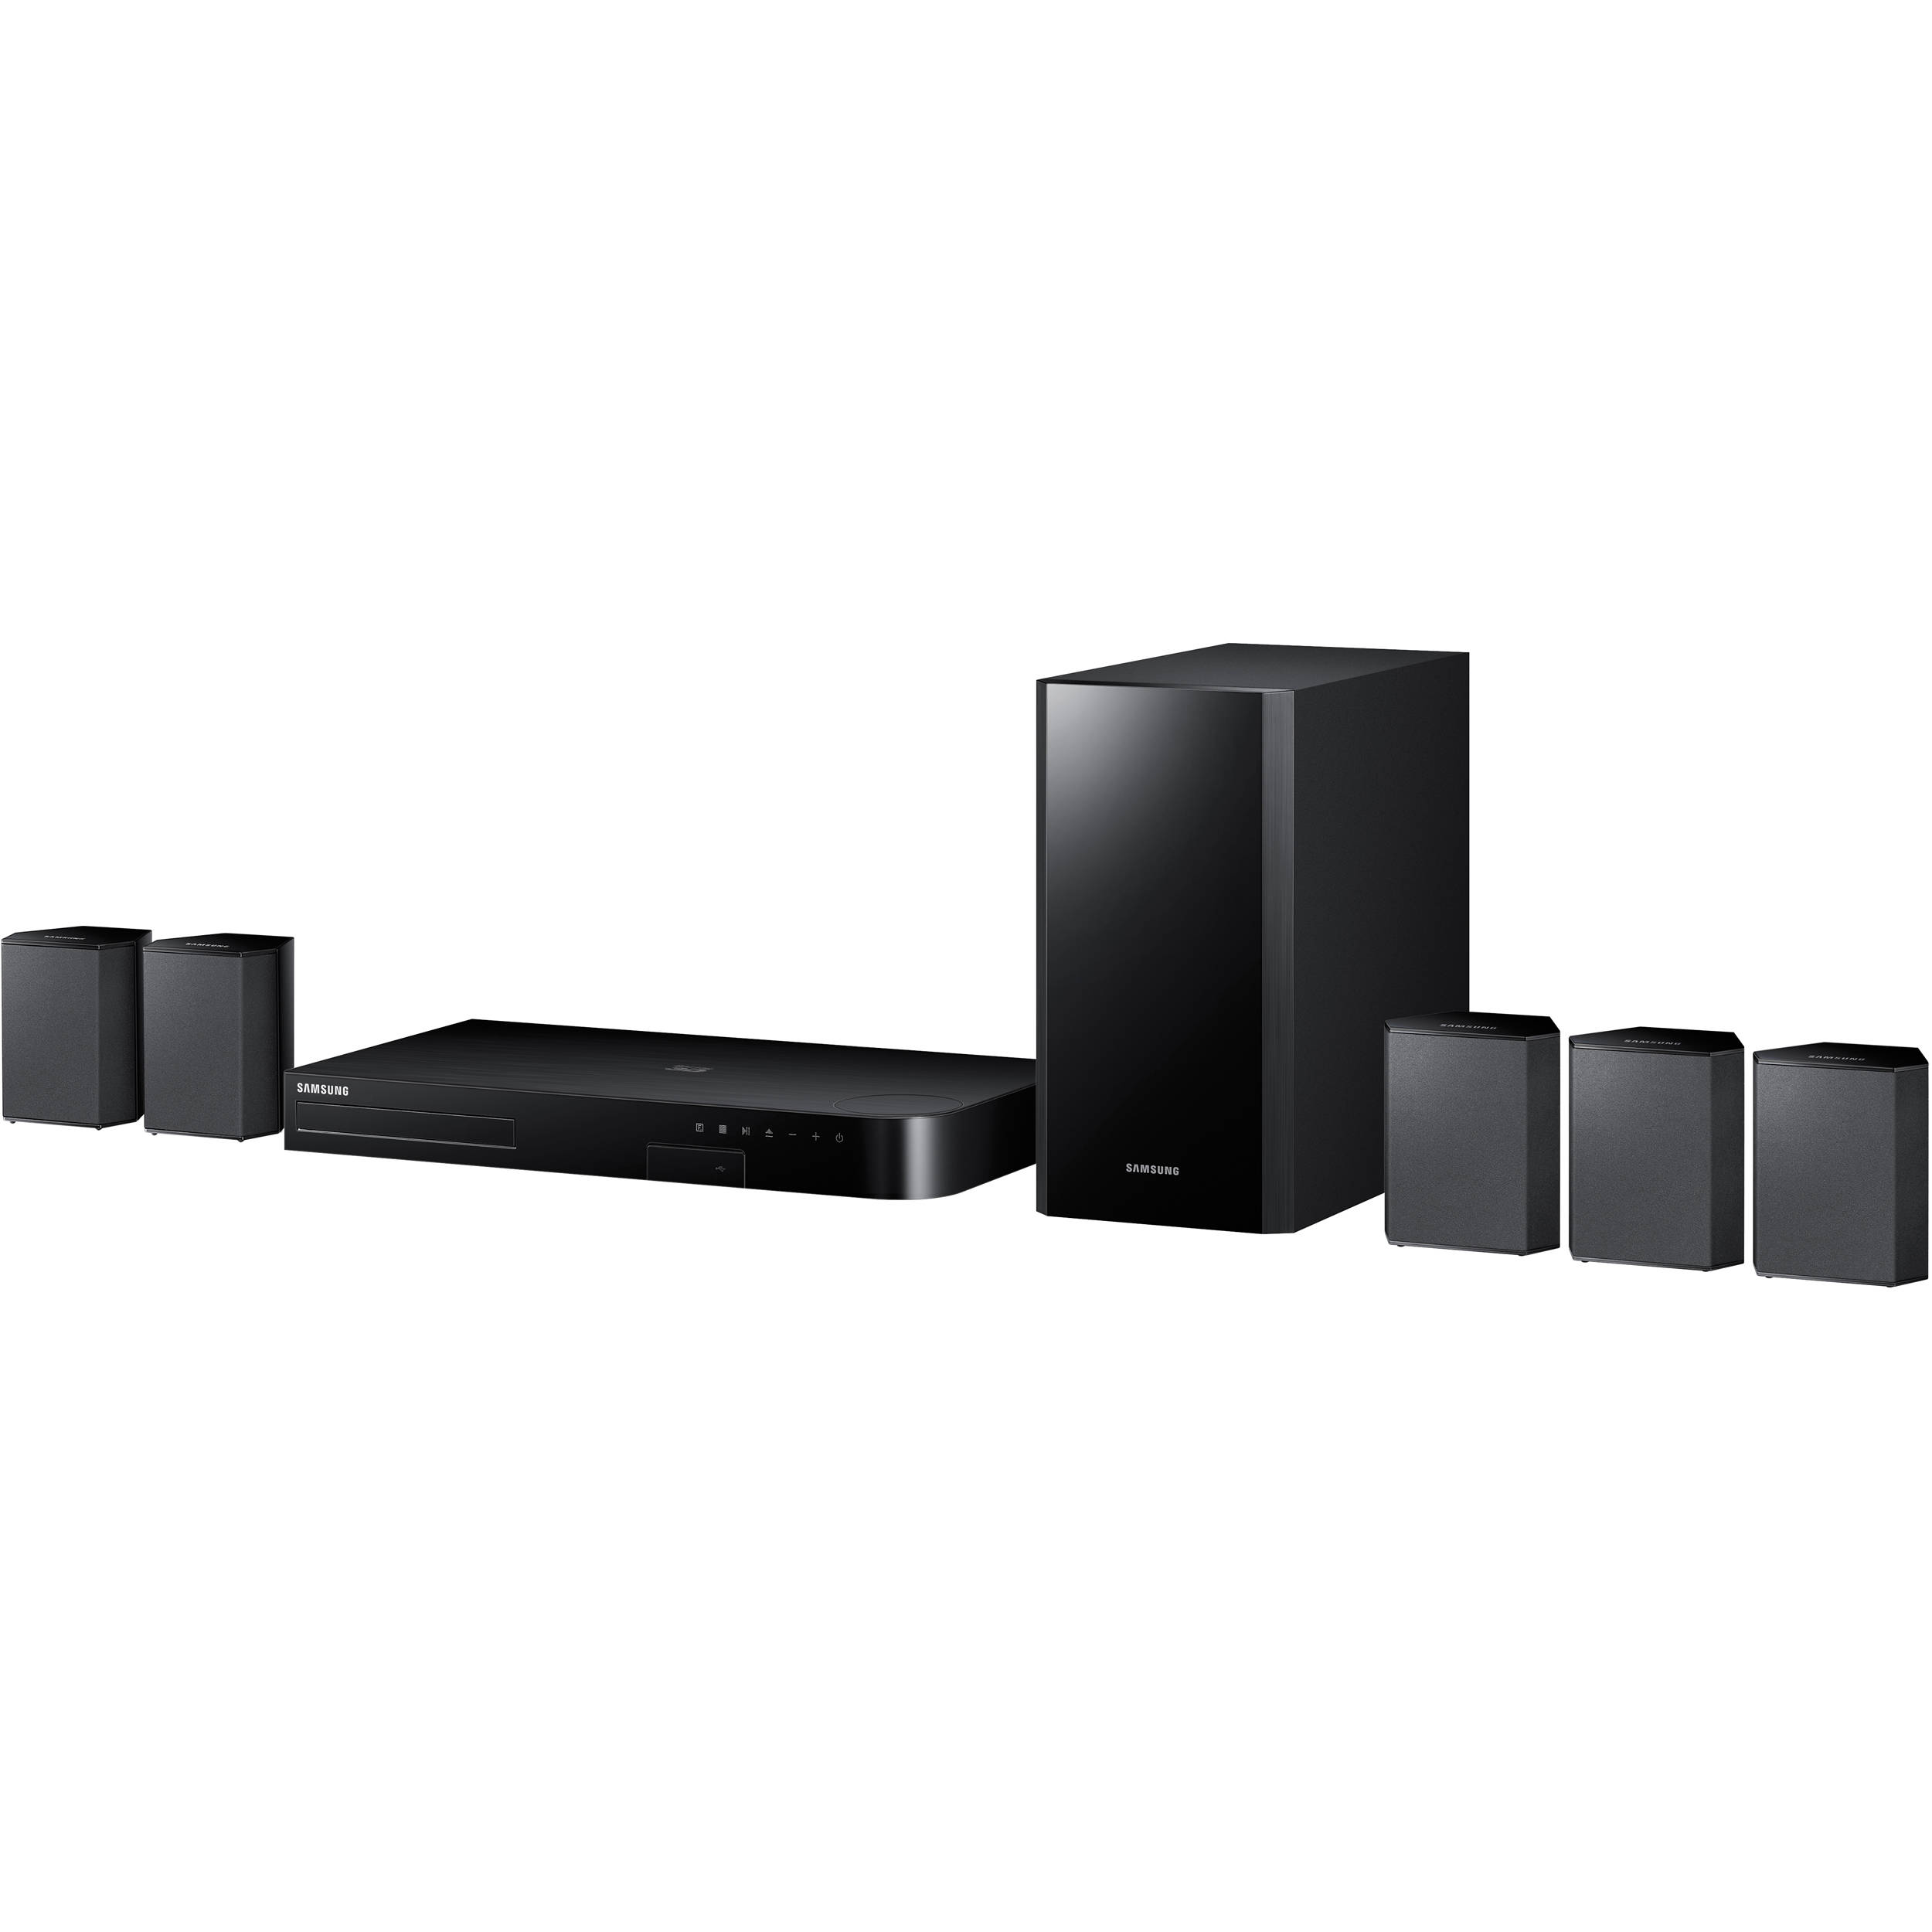 Samsung ht j4500w 51 channel smart blu ray home ht j4500za bh samsung ht j4500w 51 channel smart blu ray home theater system sciox Choice Image